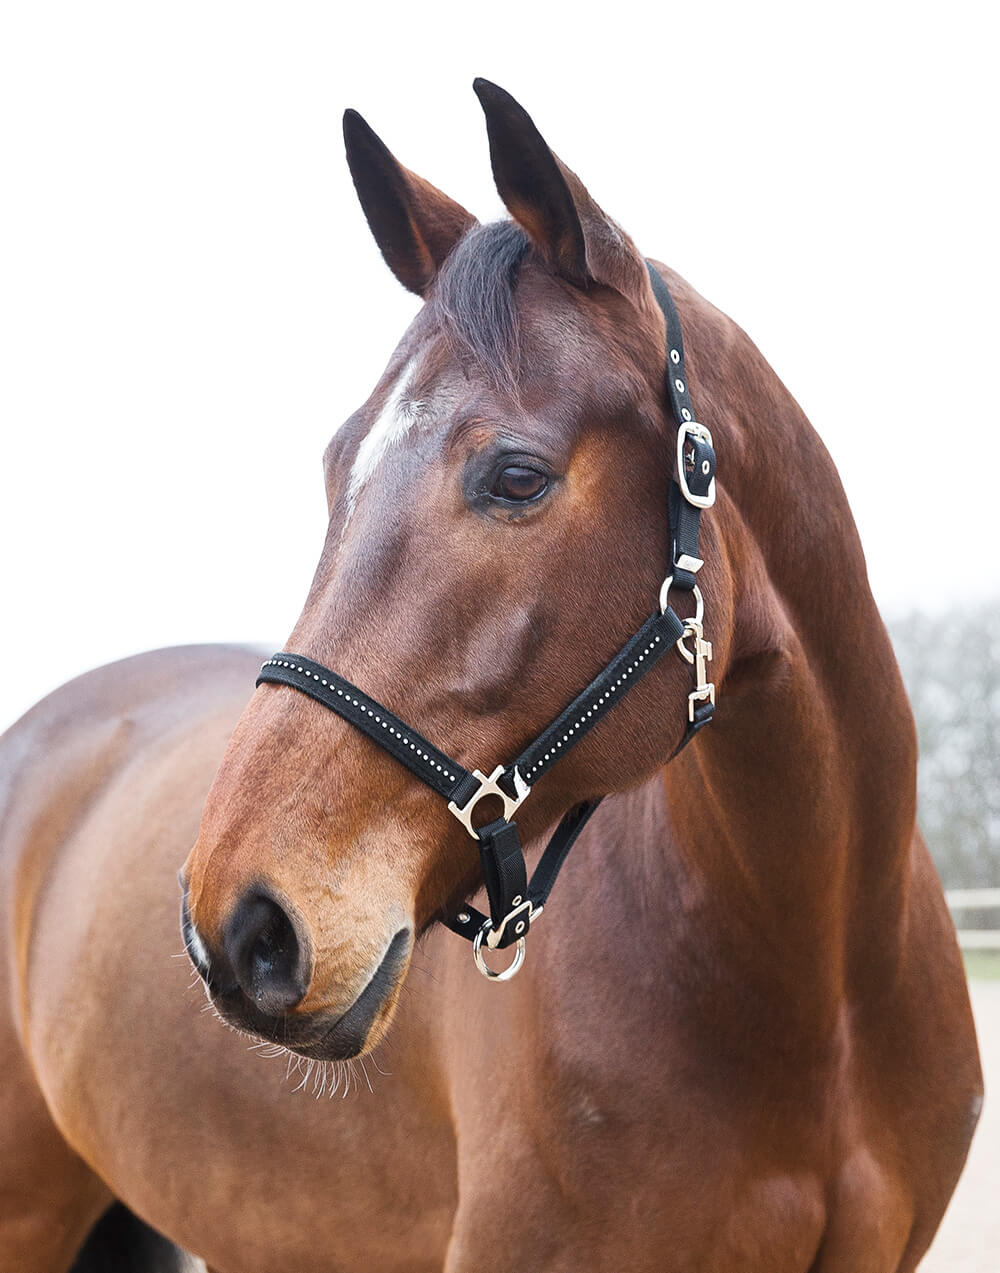 Strong nylon halter with crystals and metal buckles. Adjustable at the headpiece and noseband